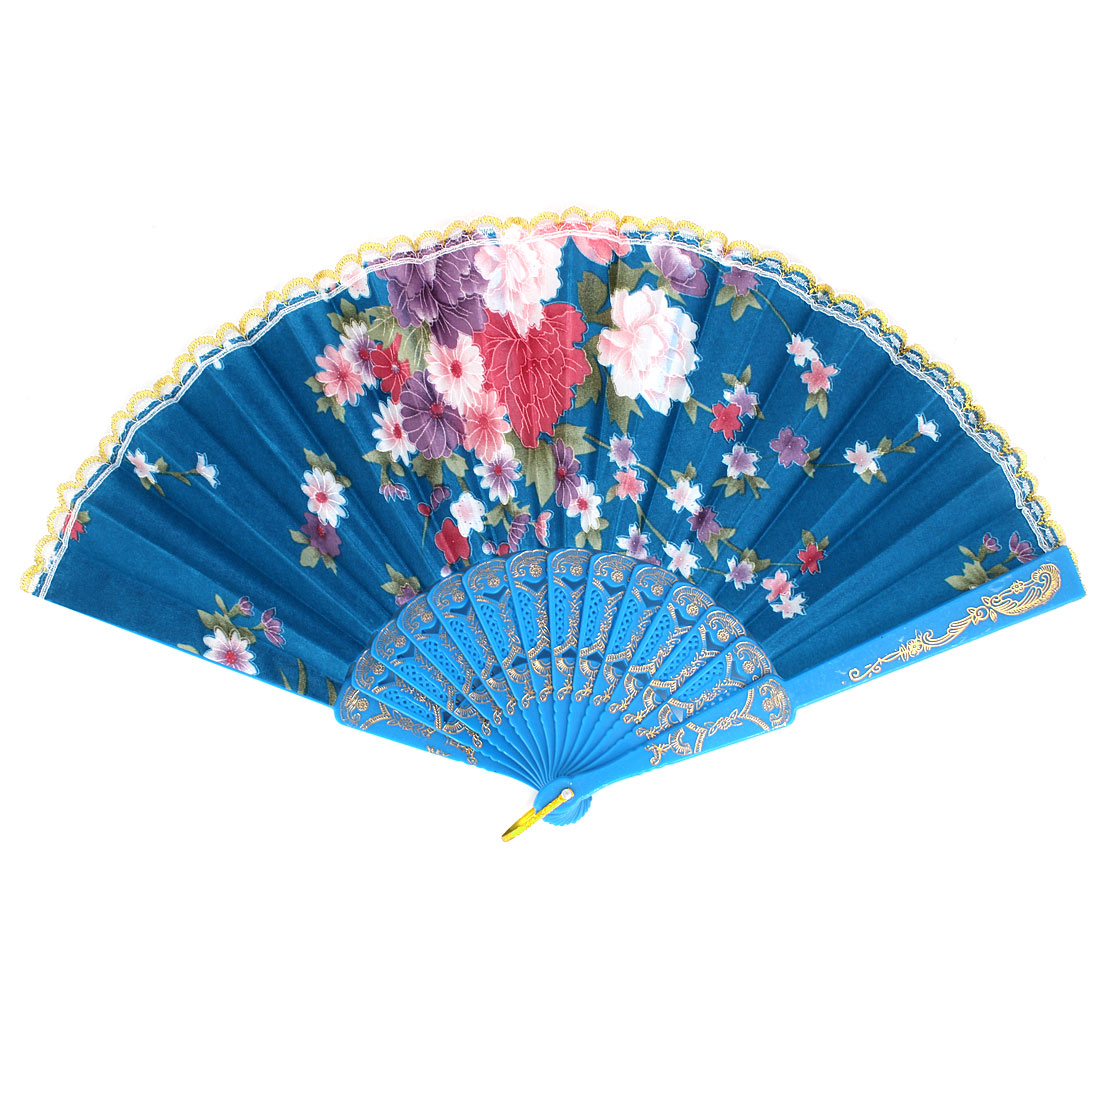 Flower Pattern Lace Trim Plastic Ribs Dancing Folding Hand Fan Blue